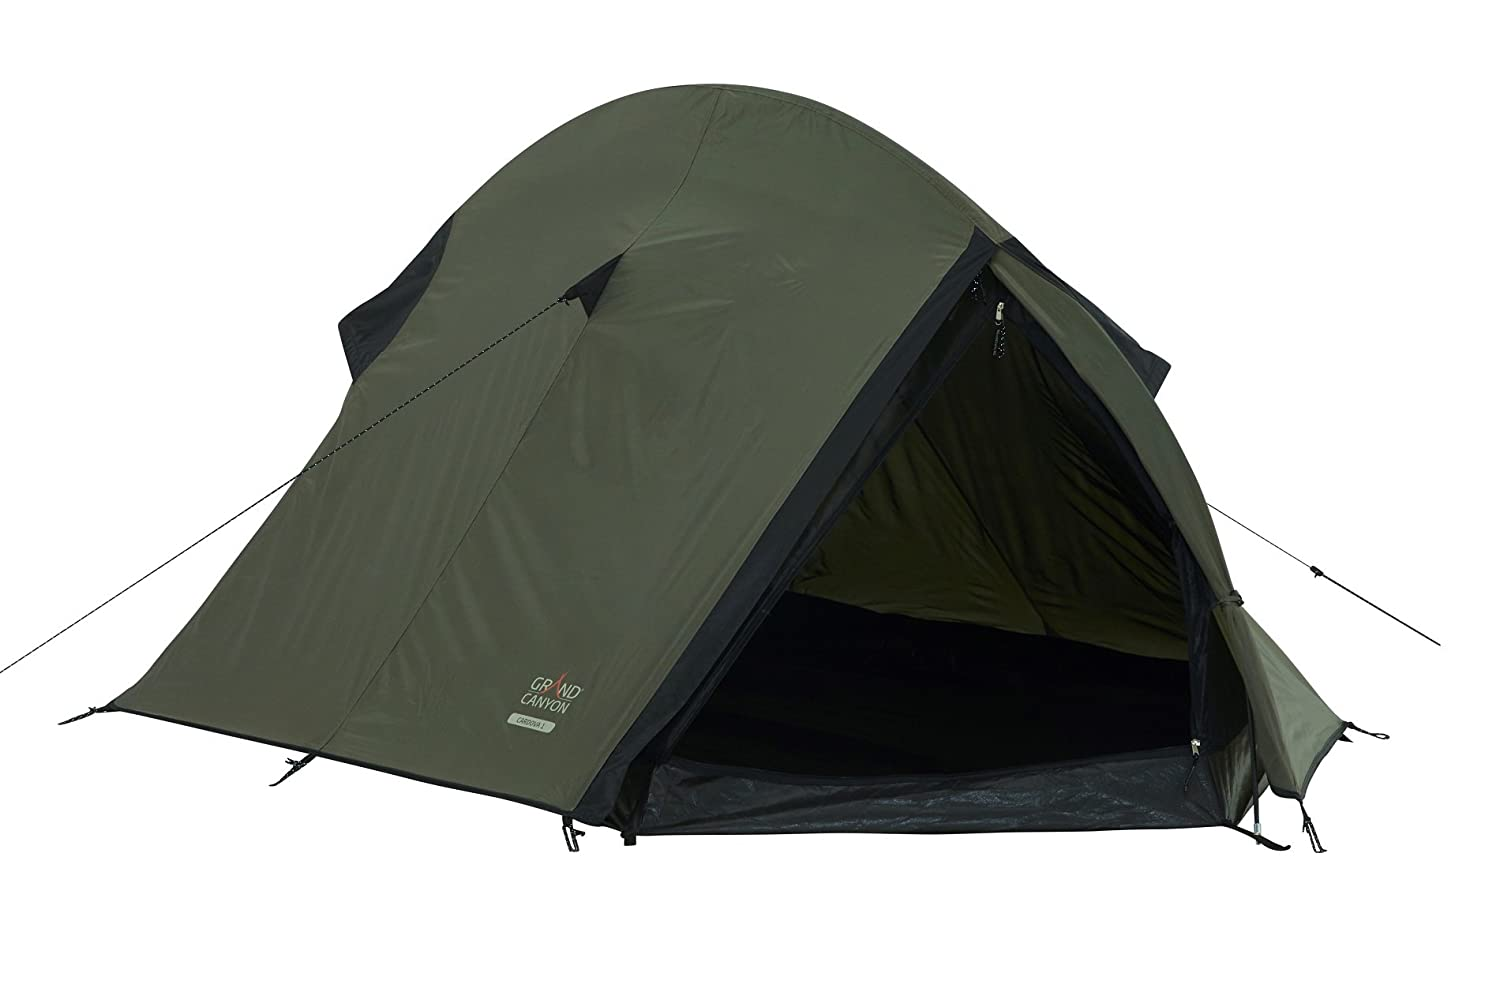 Grand Canyon Cardova 1   Trekking Tent (1 2 Person Tent), Different Colors by Amazon